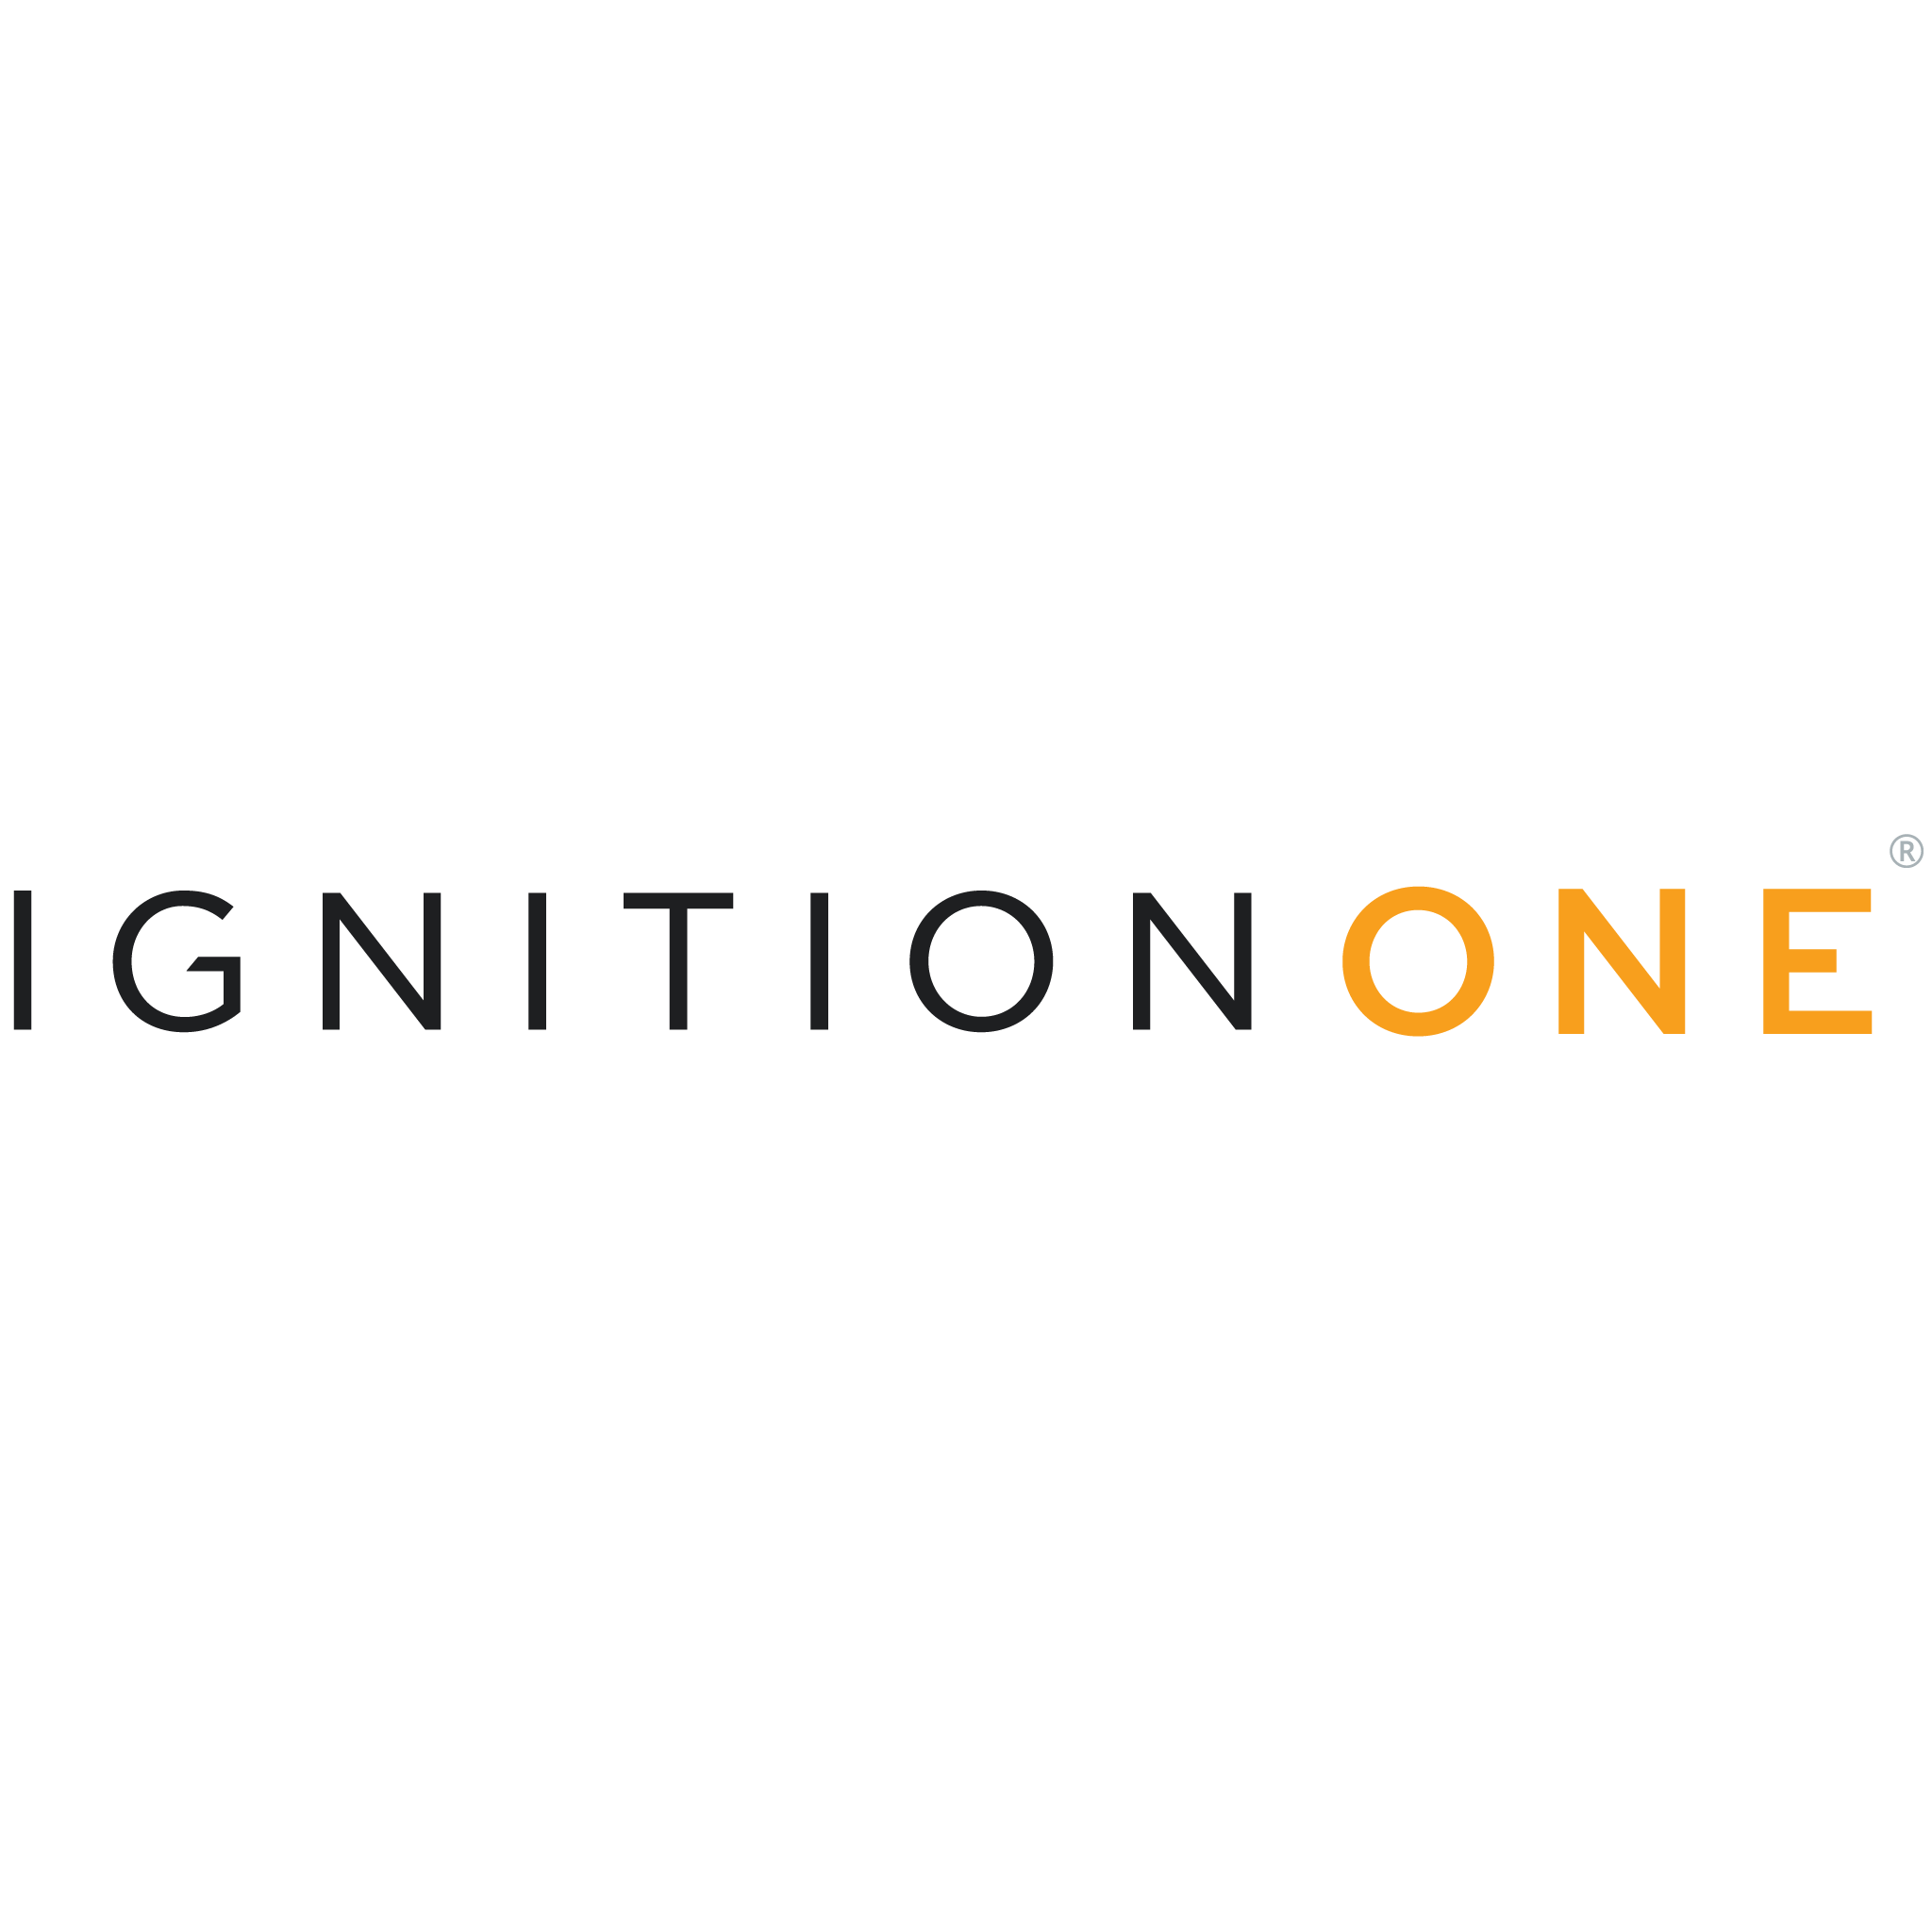 IgnitionOne-standard-logo-2048.png